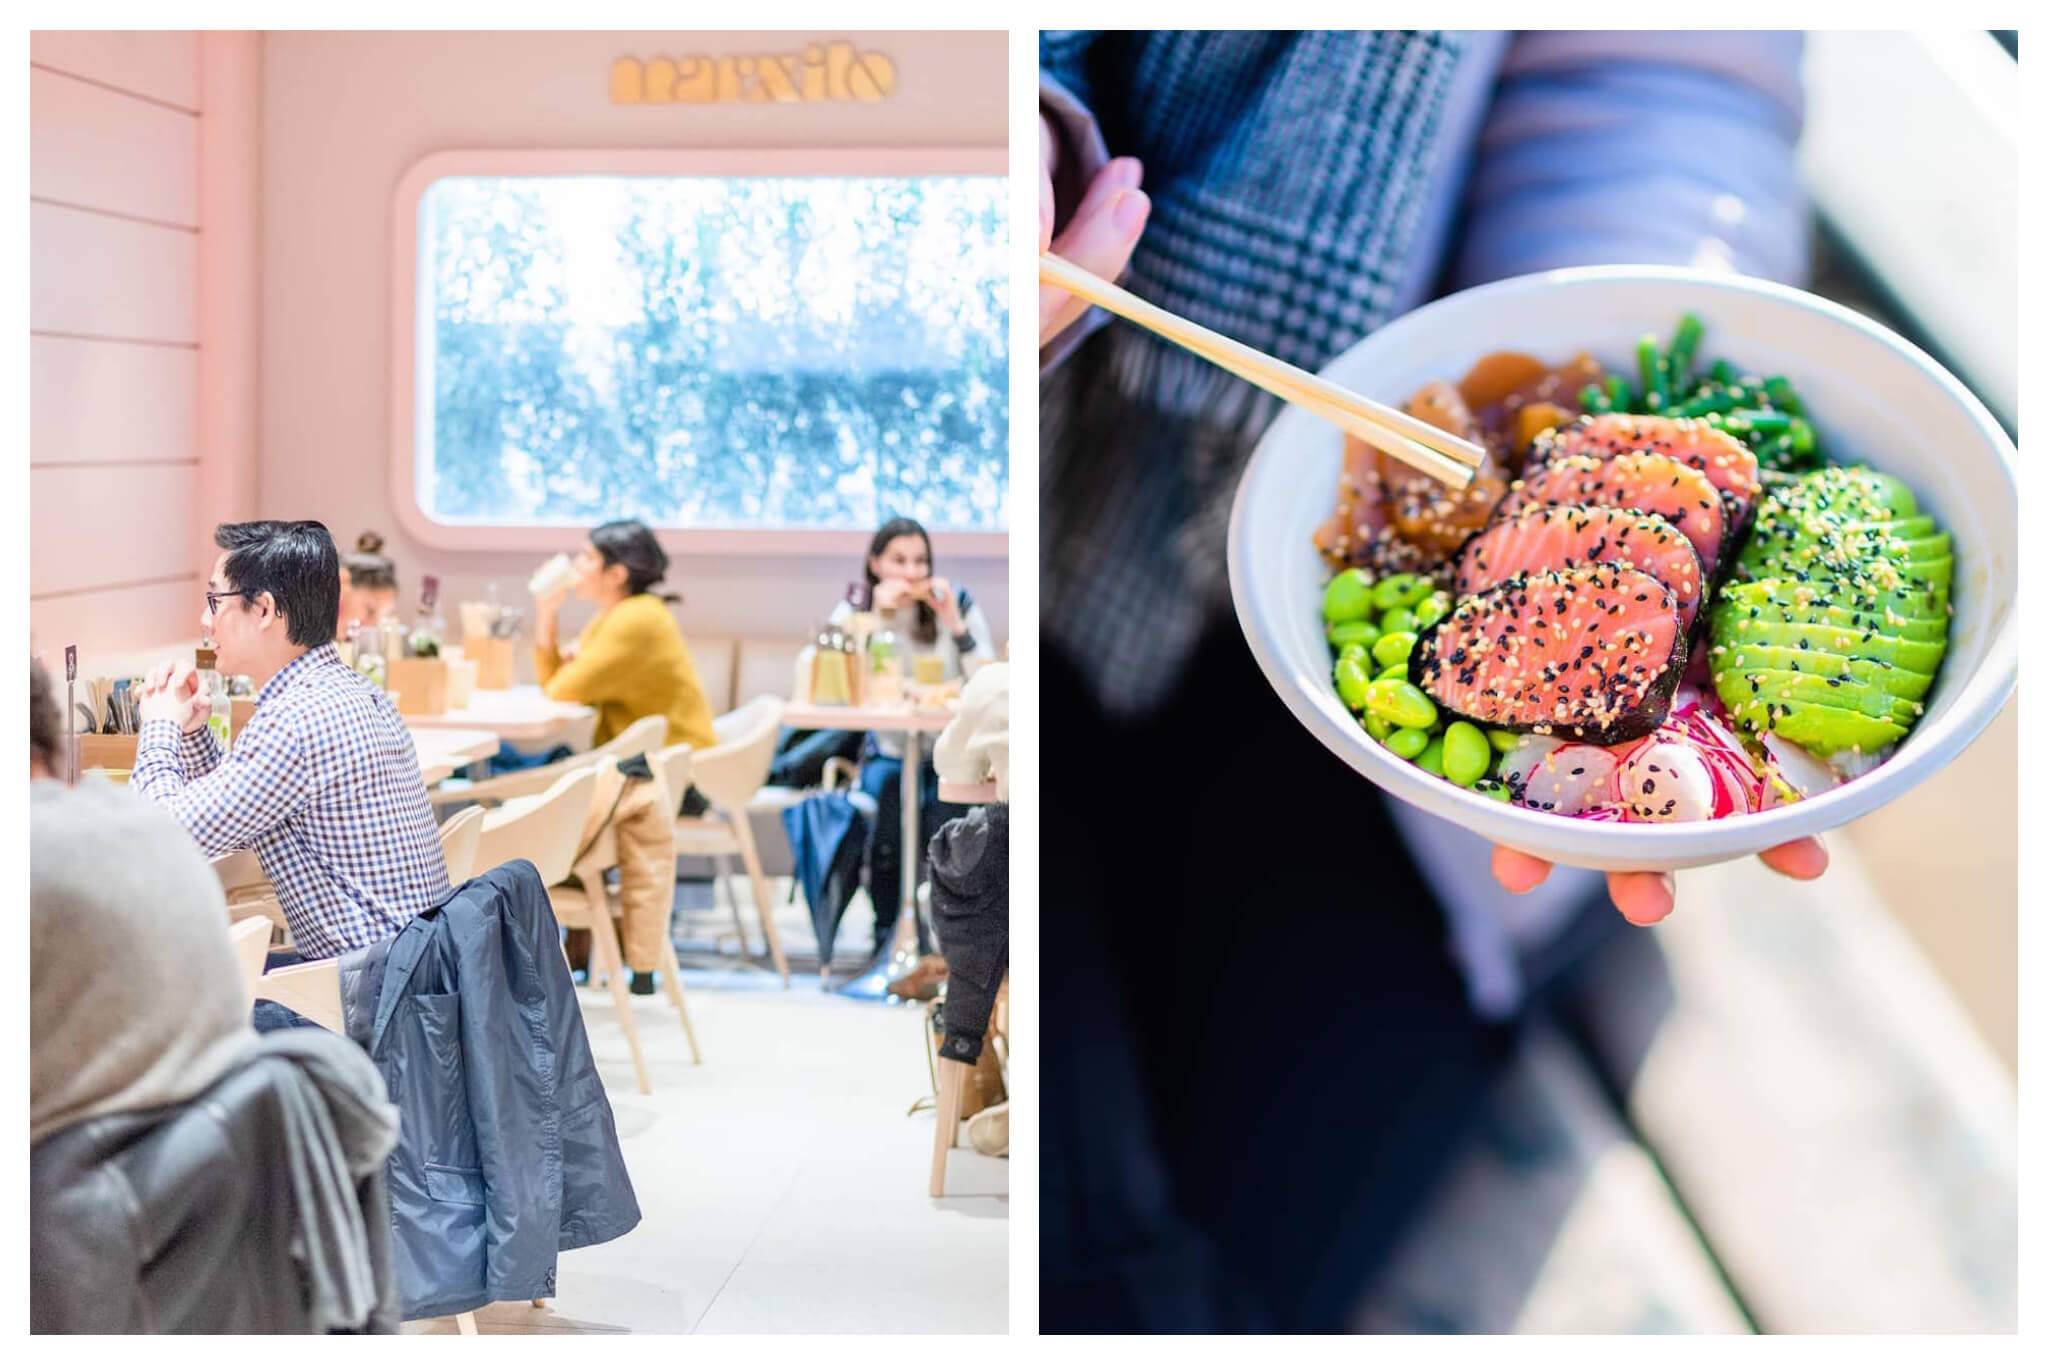 Left: The inside of Marxito restaurant near the Champs Elysées in Paris. The walls are a light baby pink, and people are seated for lunch at tables in the restaurant, Right: A poké bowl at Marxito, which includes salmon, avocado, edamame, radish, and various other produce items.